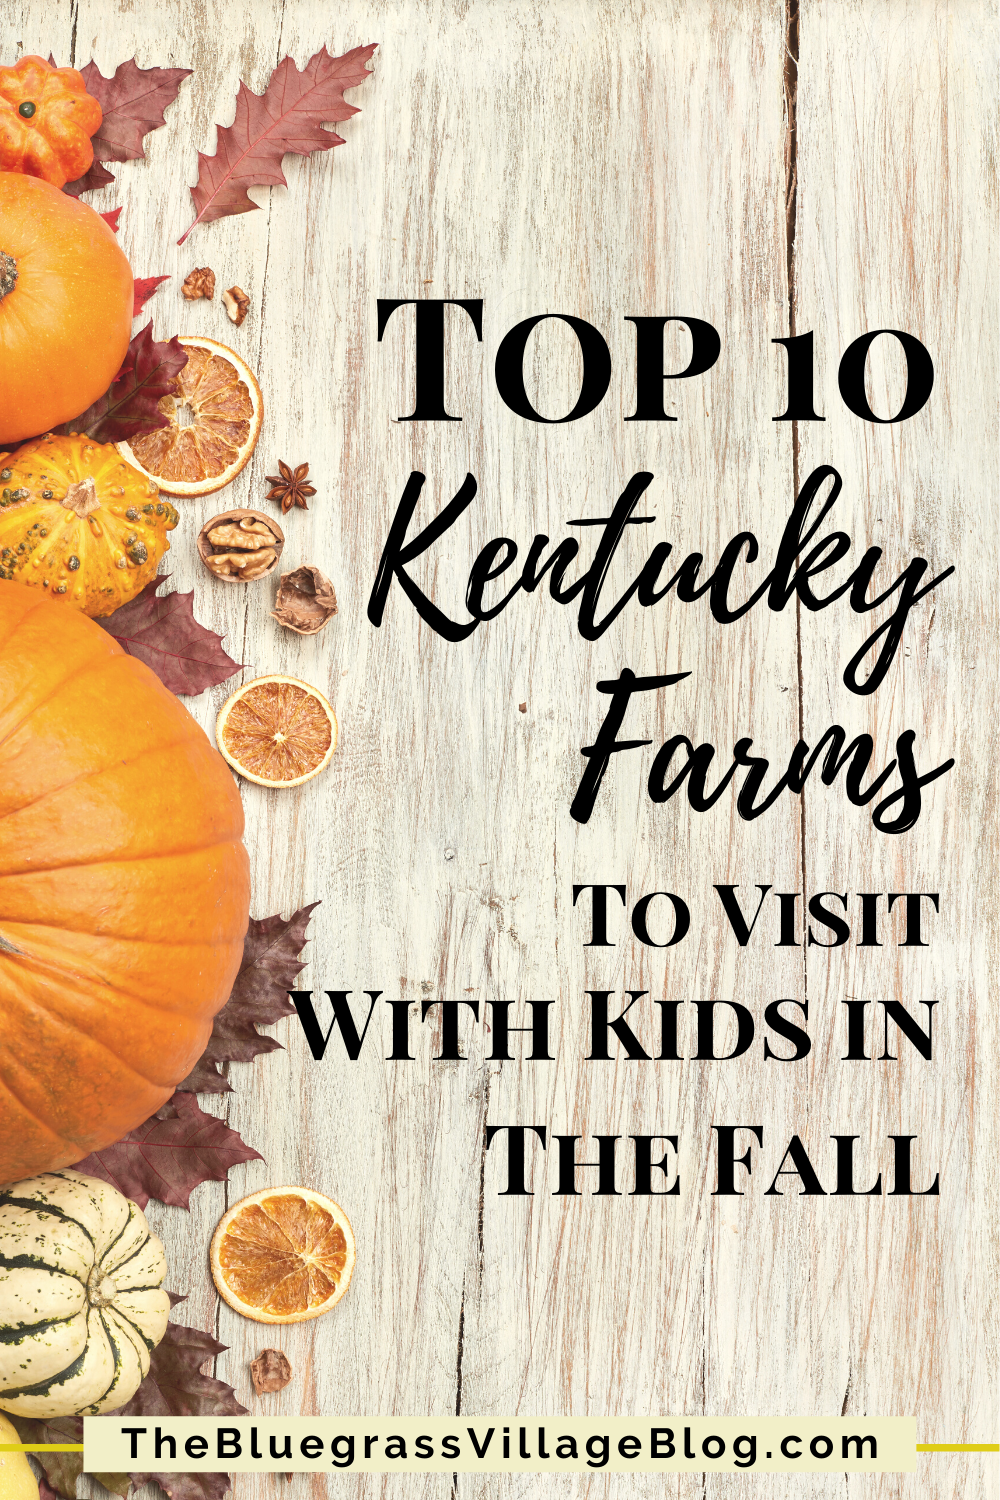 Top 10 Kentucky Farms To Visit With Kids In The Fall In 2020 Kentucky Farms Autumn Activities For Kids Kentucky